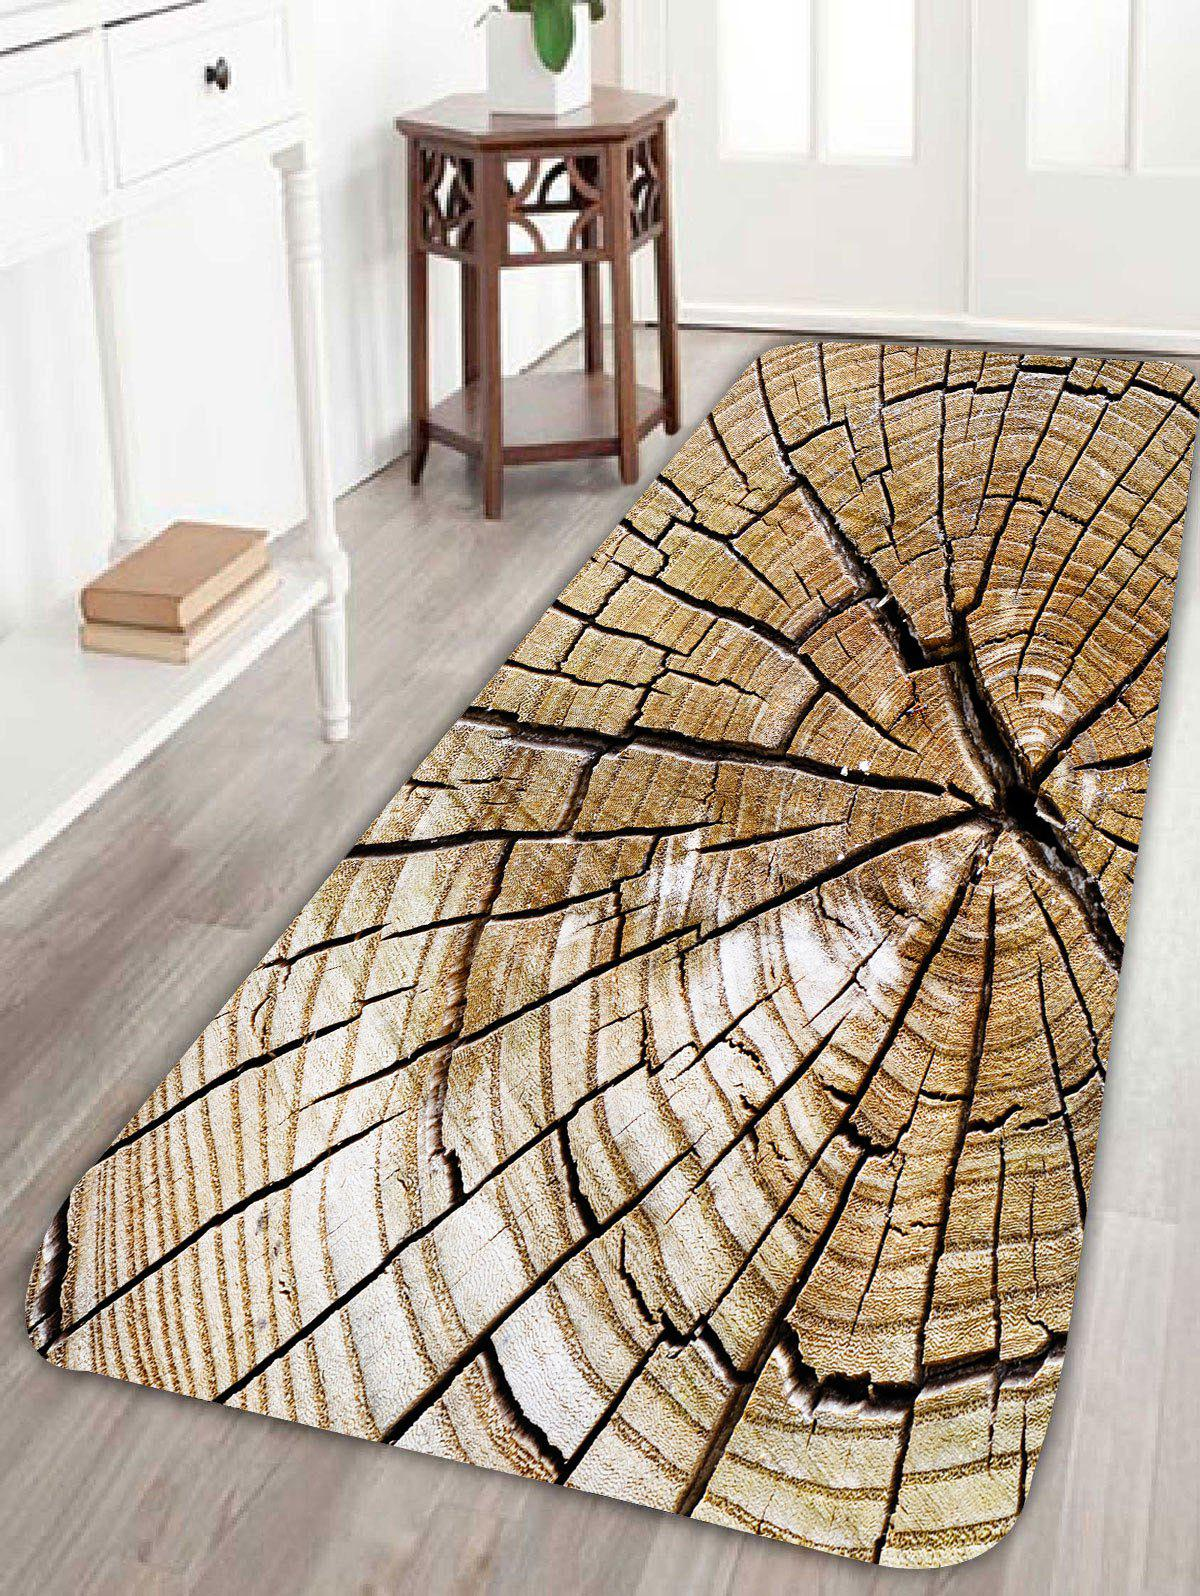 Soft Absorption Broken Plank Bathroom Floor RugHOME<br><br>Size: W24 INCH * L71 INCH; Color: WOOD; Products Type: Bath rugs; Materials: Coral FLeece; Pattern: Print; Style: Vintage; Shape: Rectangle; Package Contents: 1 x Rug;